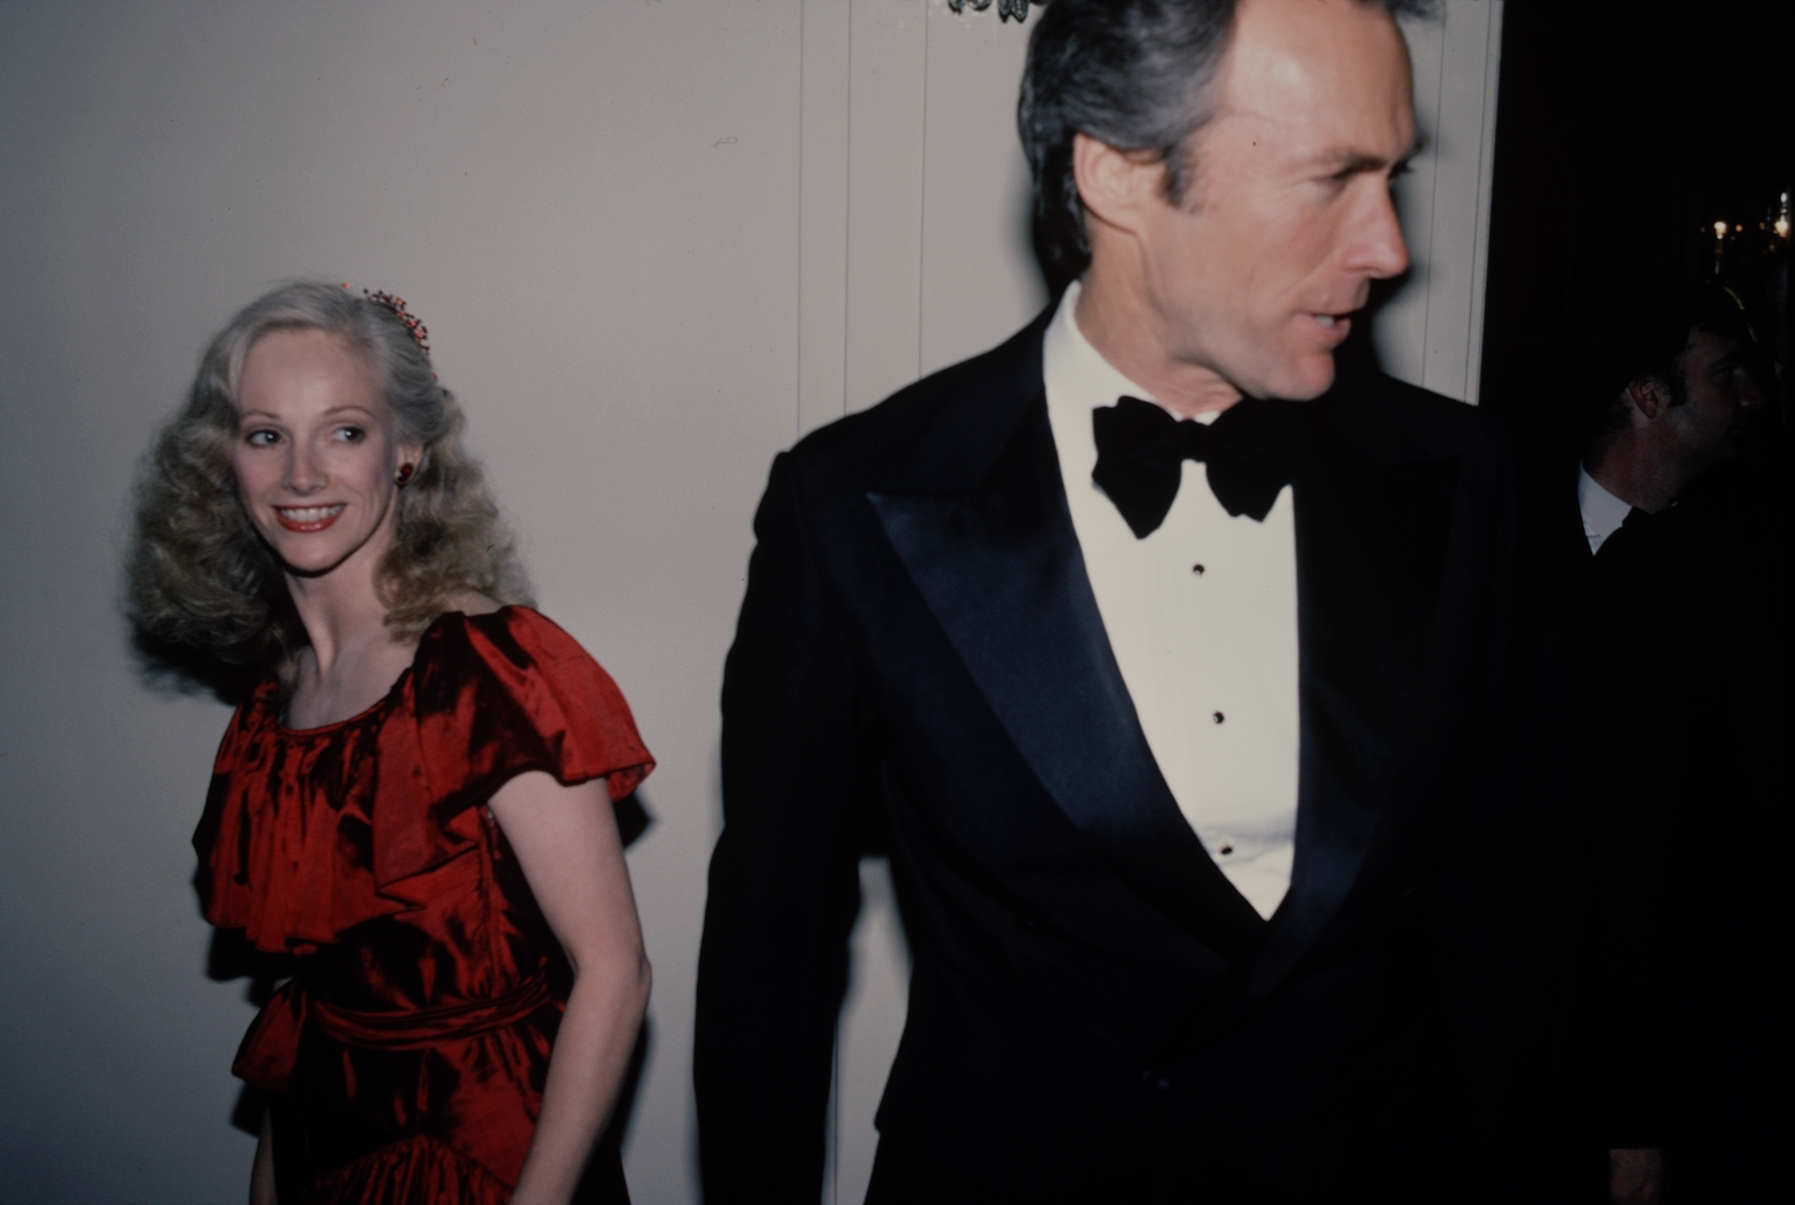 Clint Eastwood and Sondra Locke 1978. Forrás: The LIFE Picture Collection via Getty Images